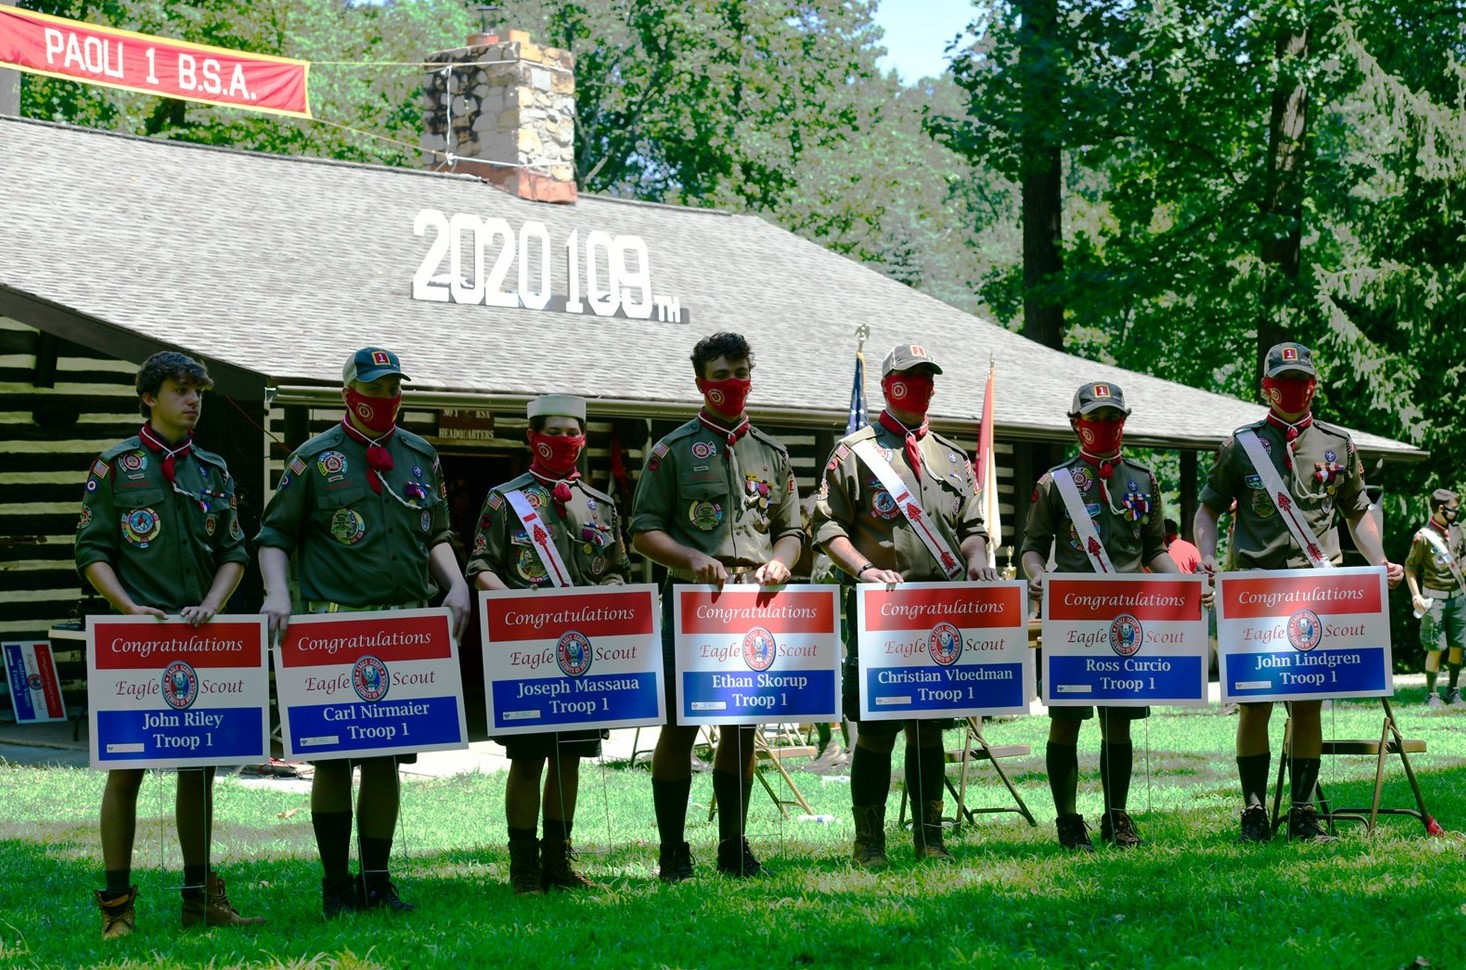 Chester County Council Gets Creative in Honoring This Year's Eagle Scouts